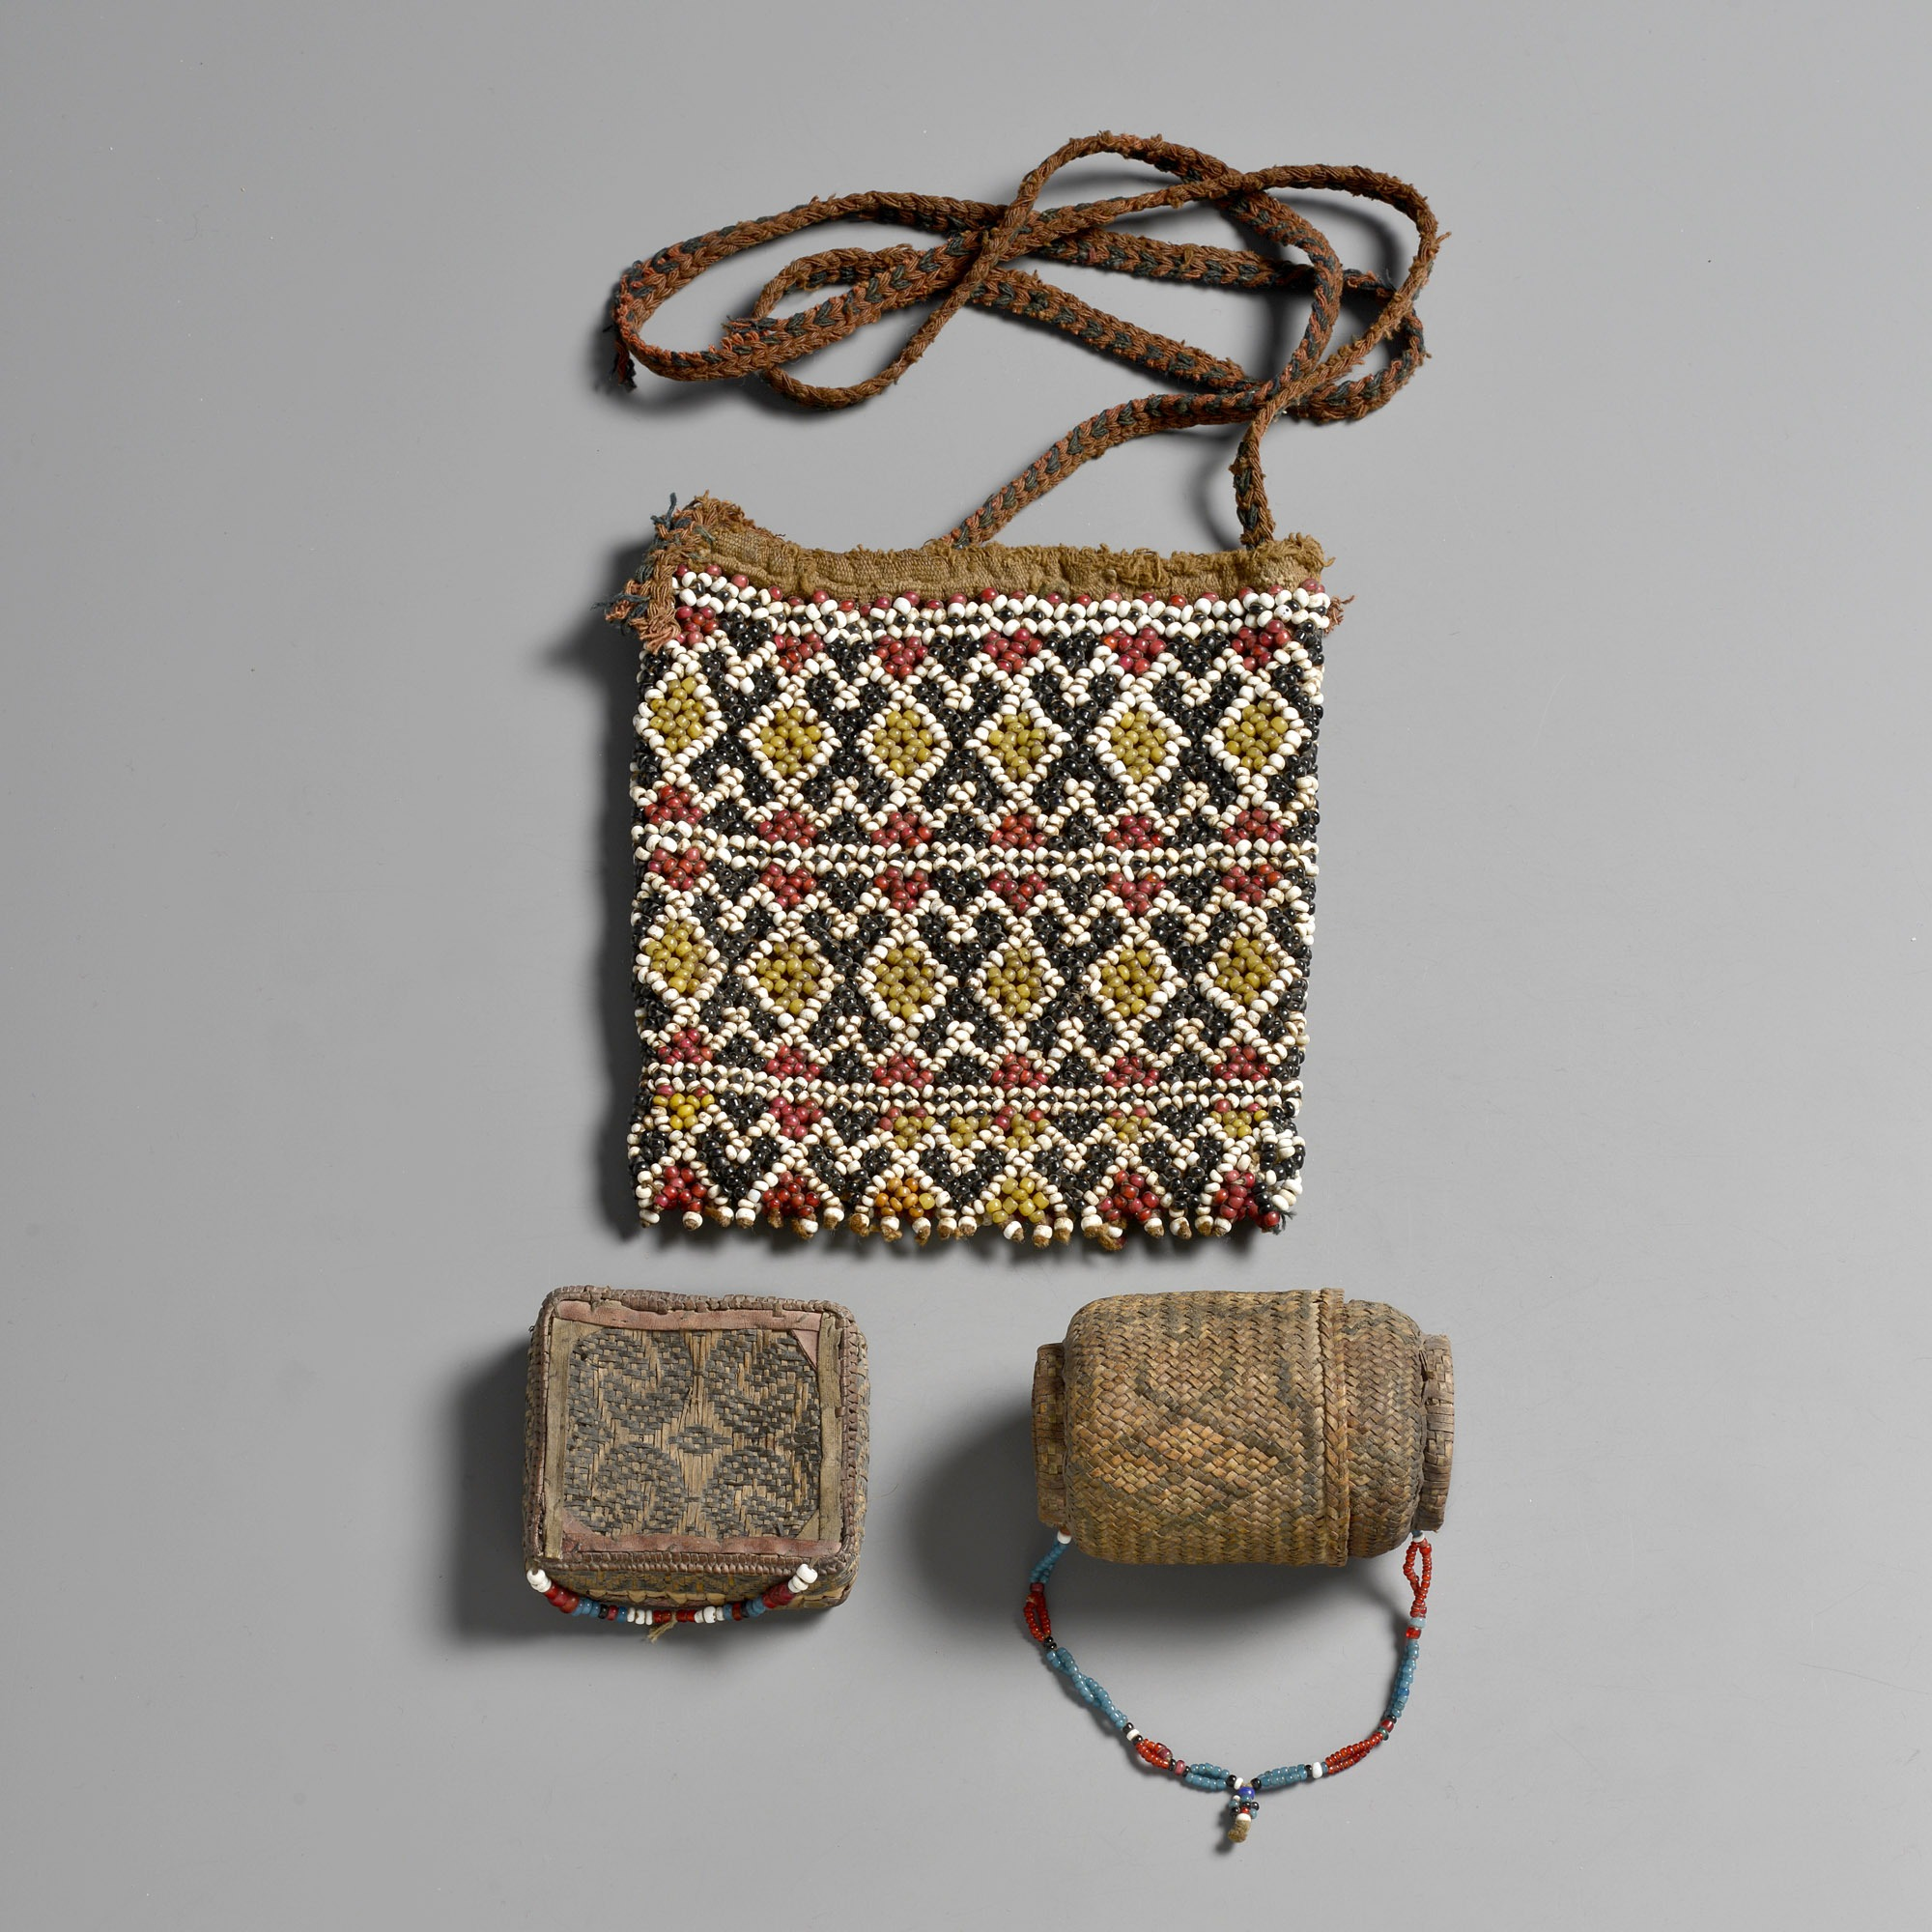 Timur Bag & Basketry